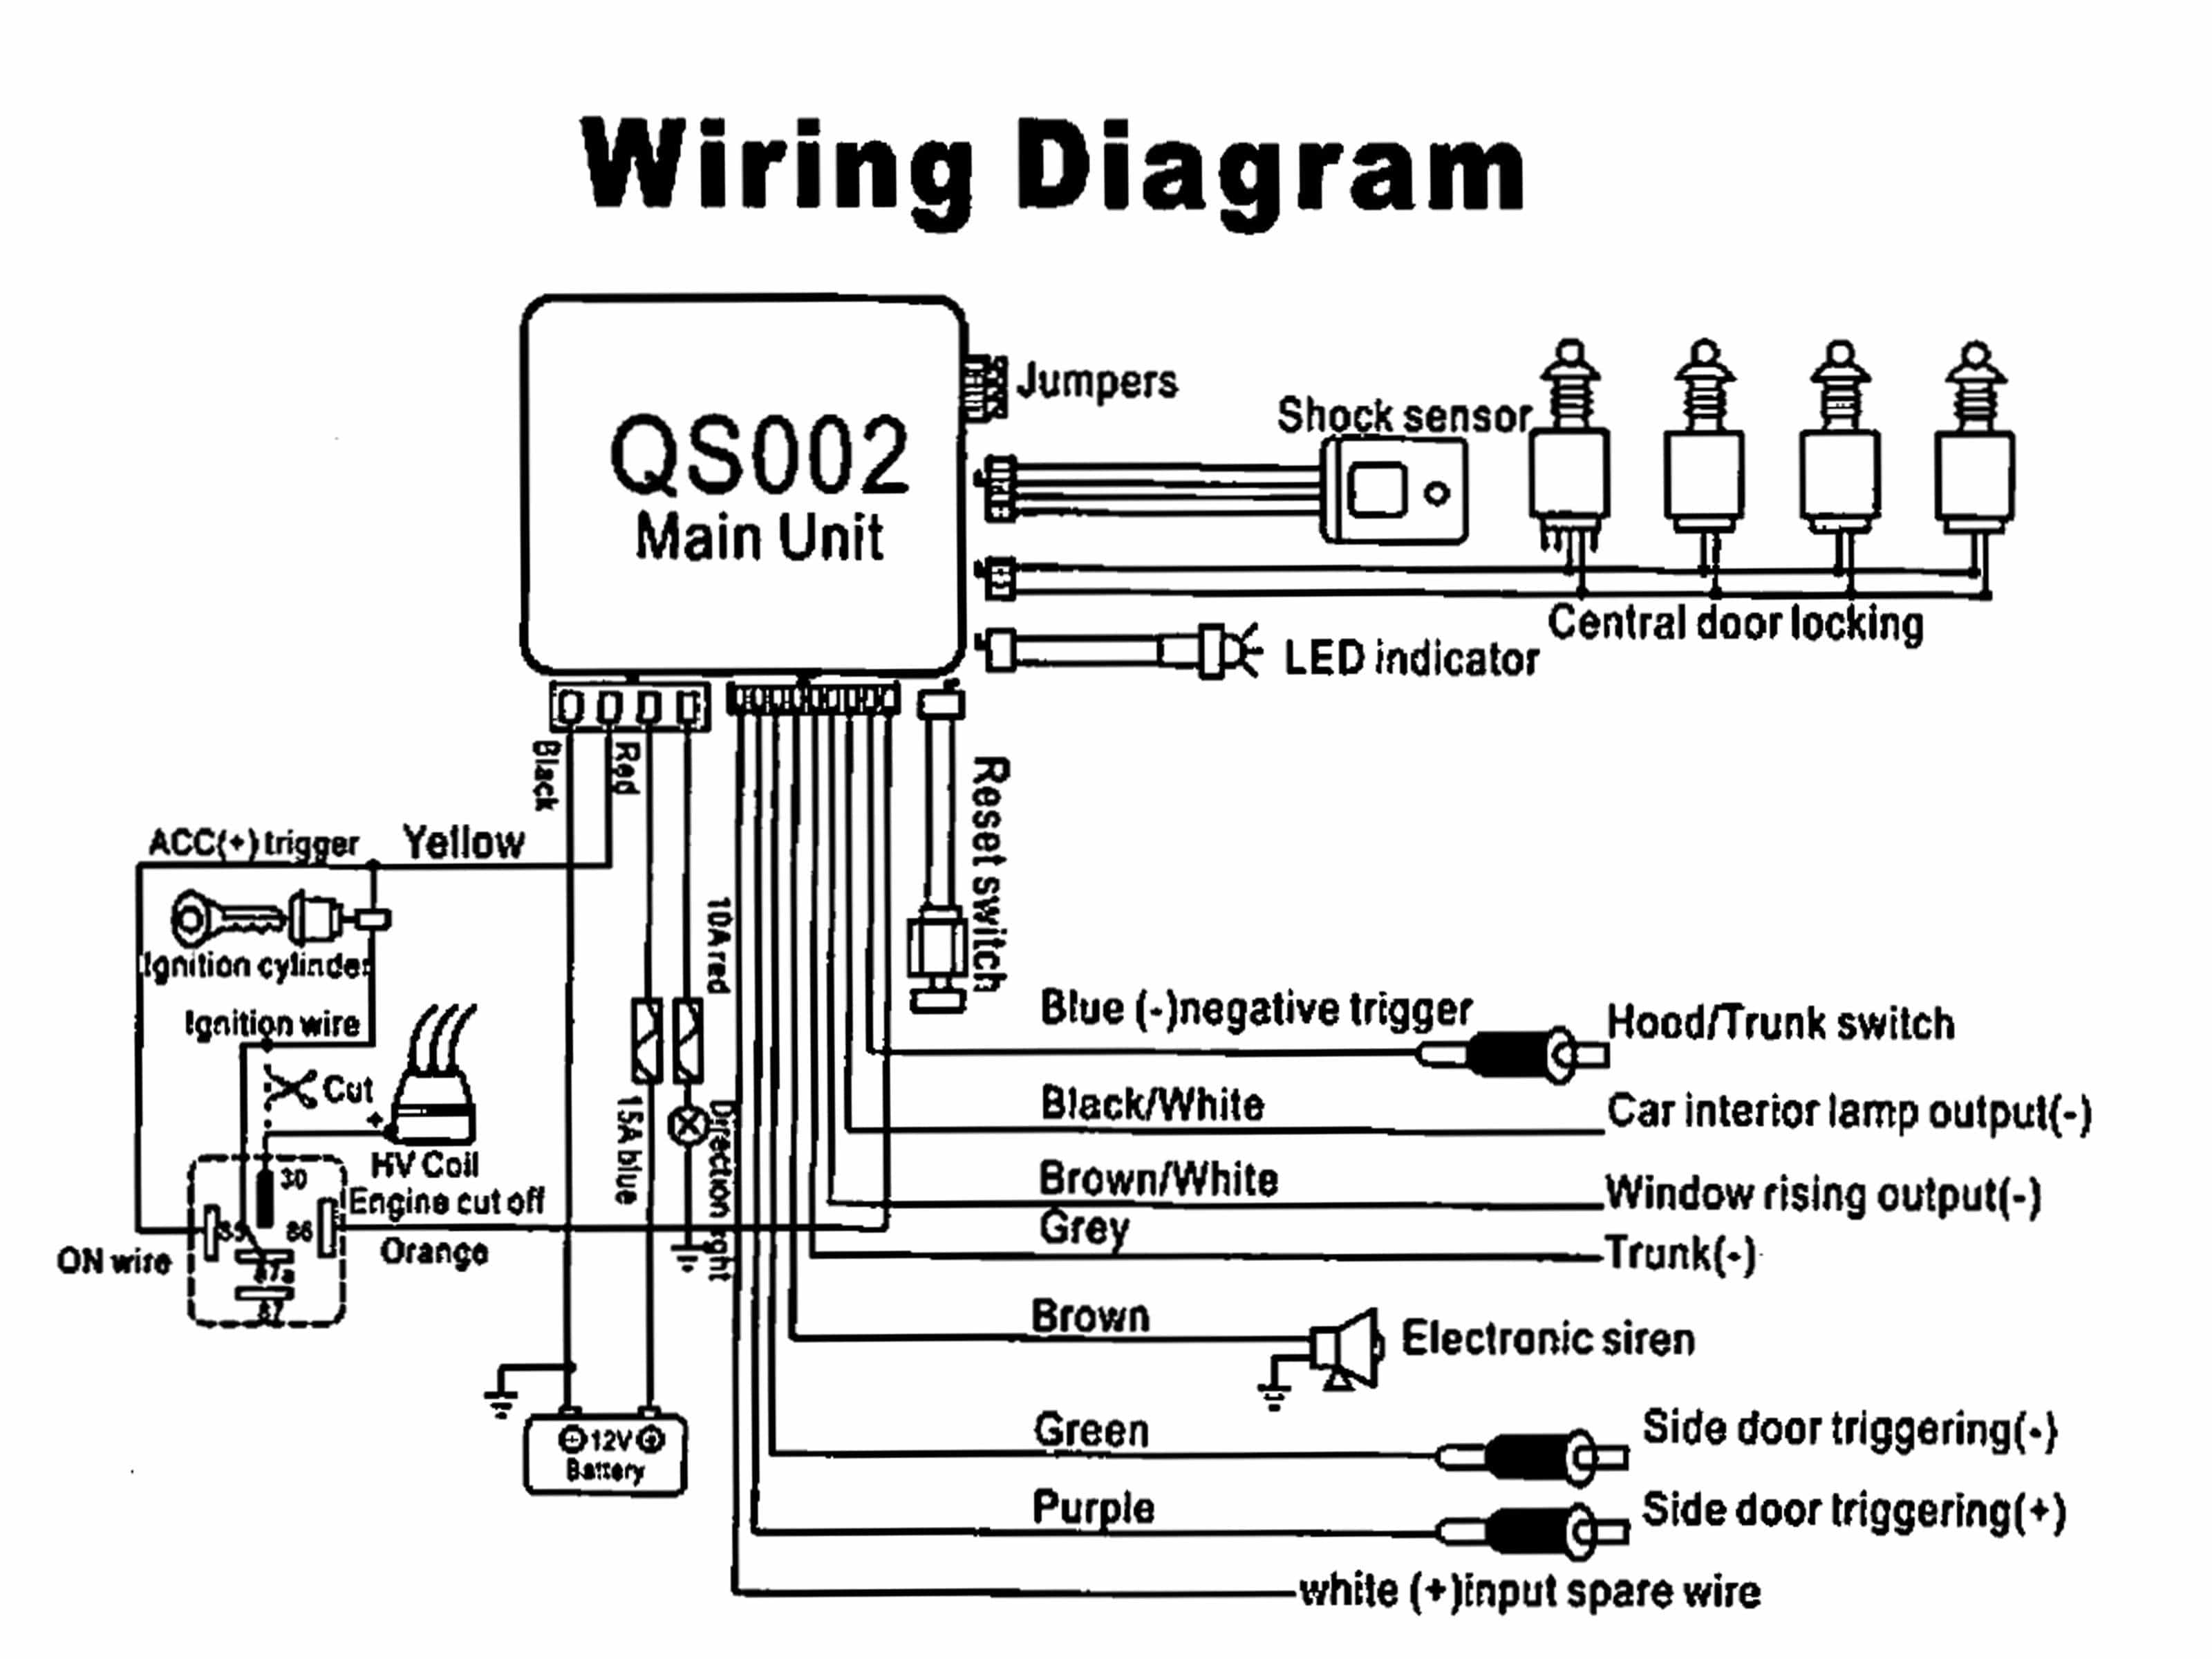 AlarmInstructions_7a98a2bc d189 4c5b 99b3 c774abdbef28 clarion cmd5 wiring diagram wiring diagram shrutiradio  at arjmand.co